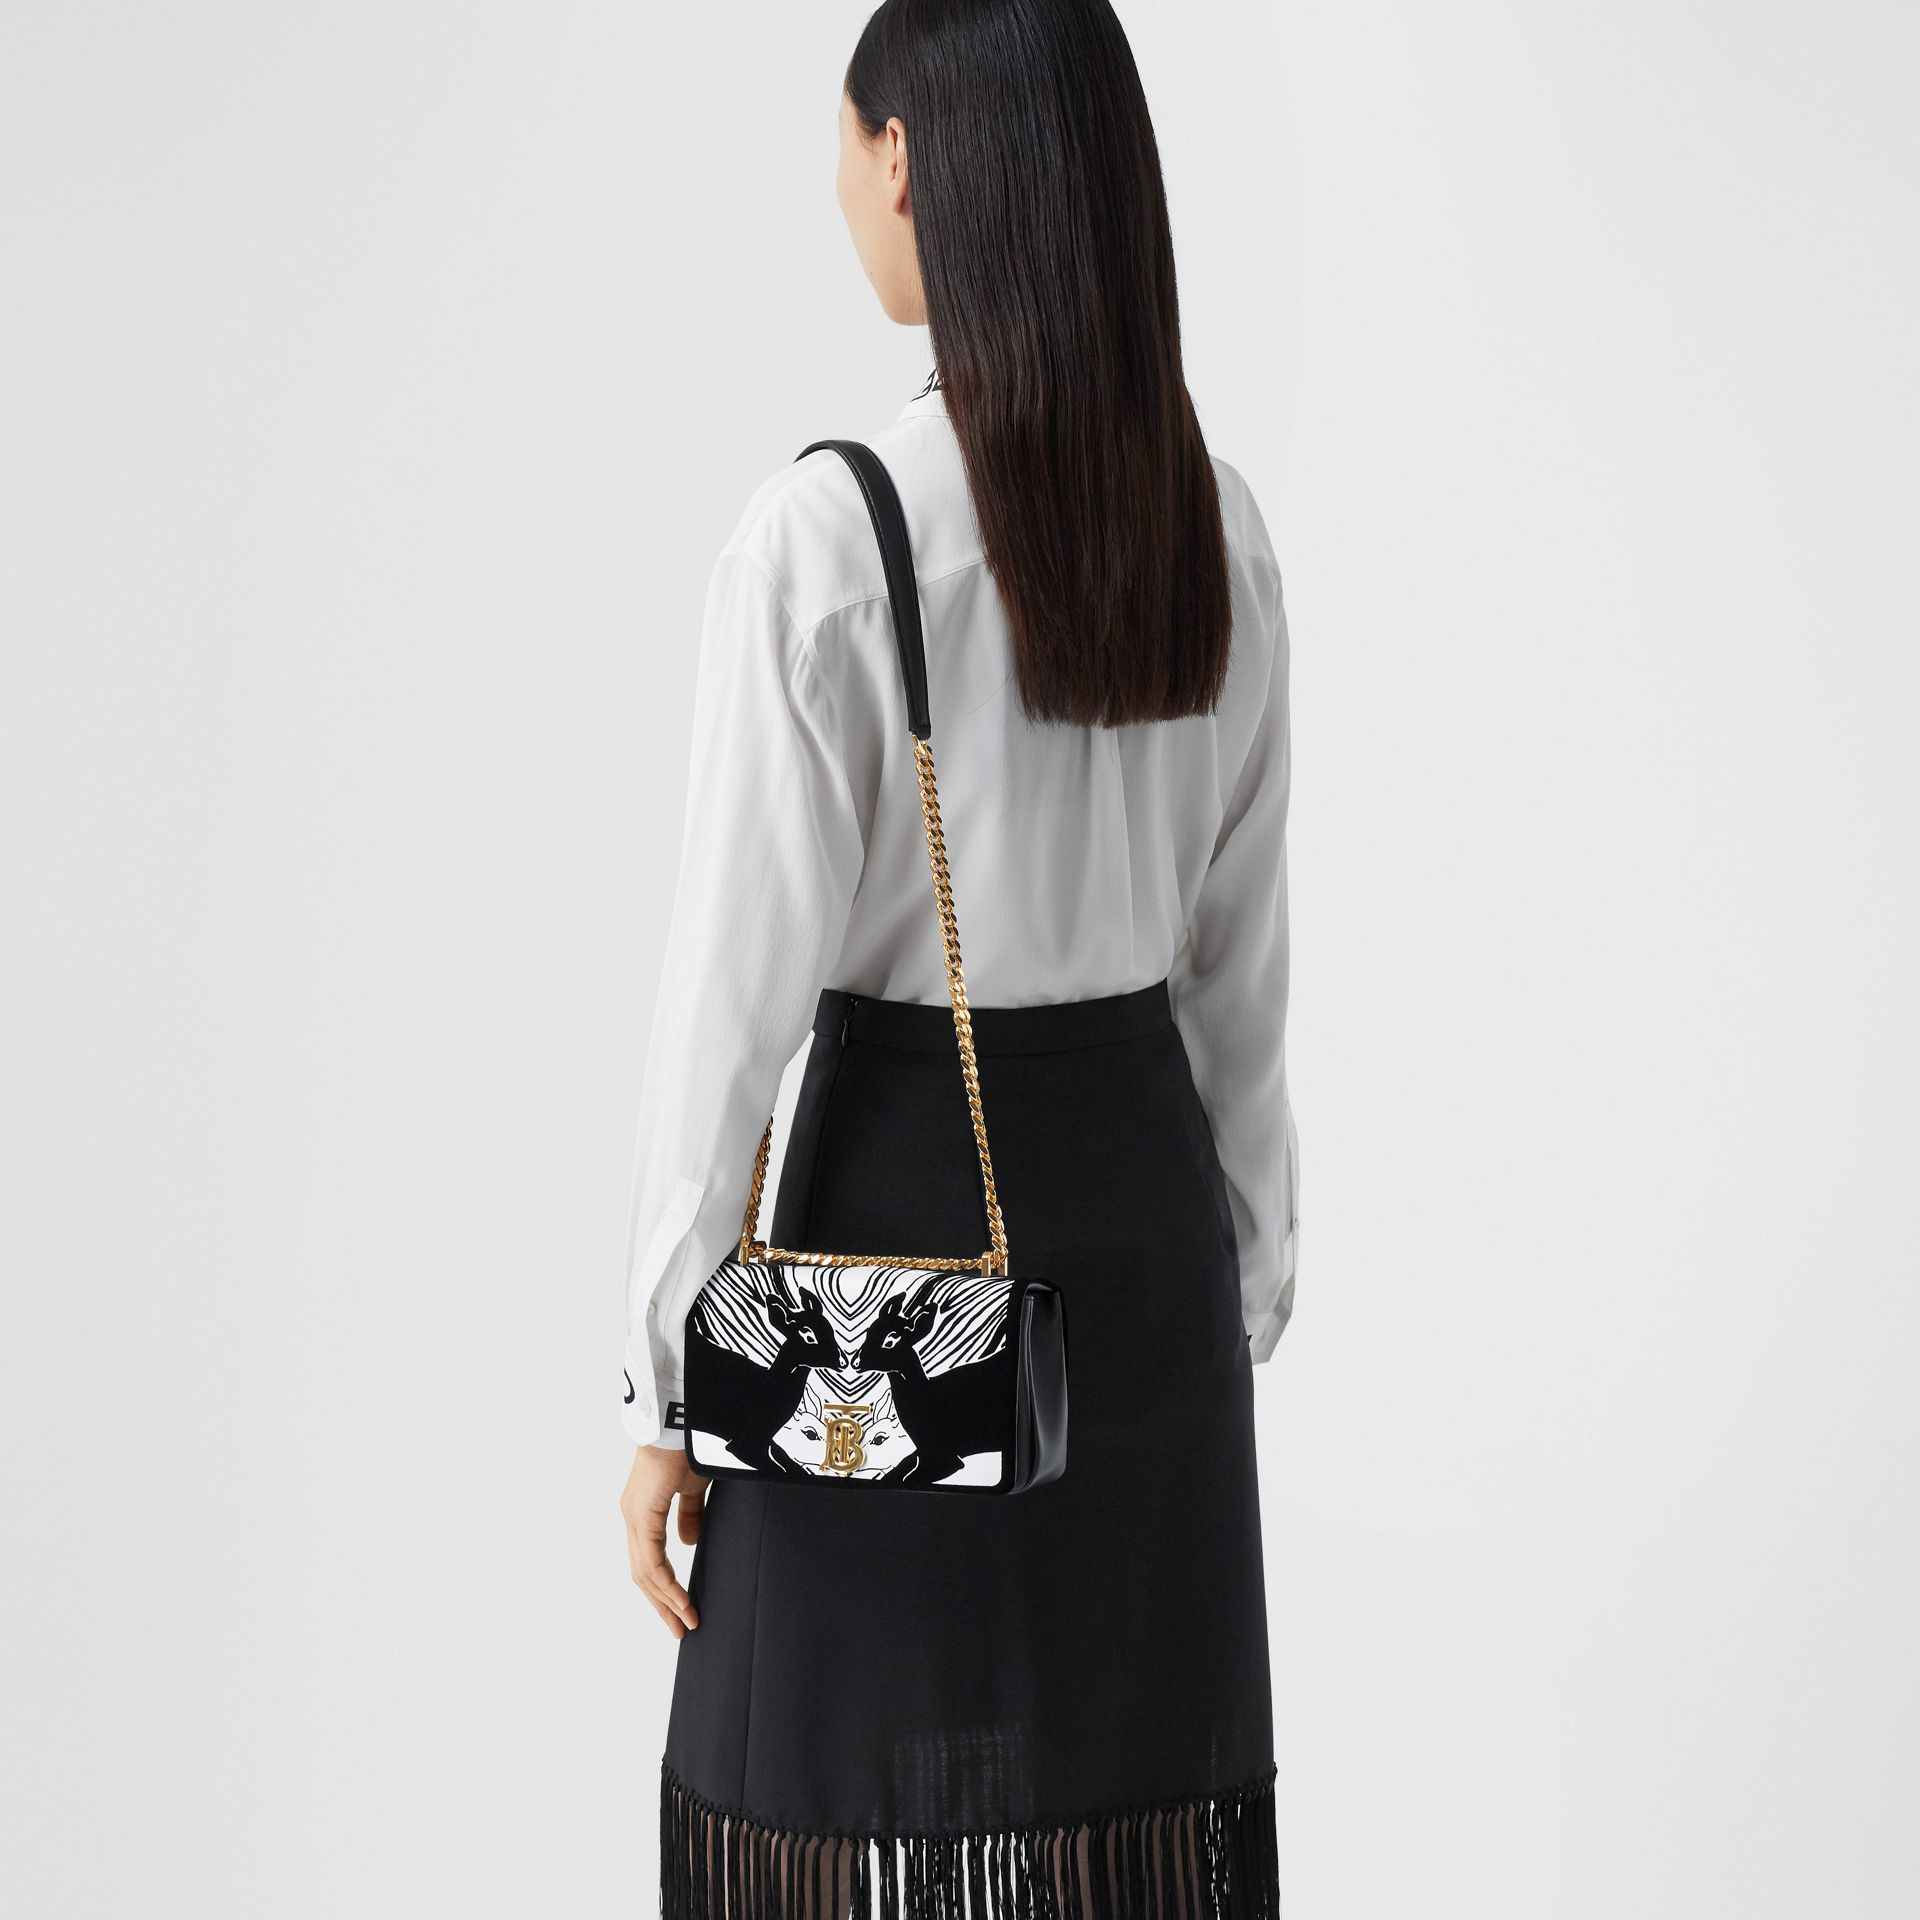 Small Deer Flock Leather Lola Bag in Black/white - Women | Burberry Hong Kong S.A.R. - gallery image 2